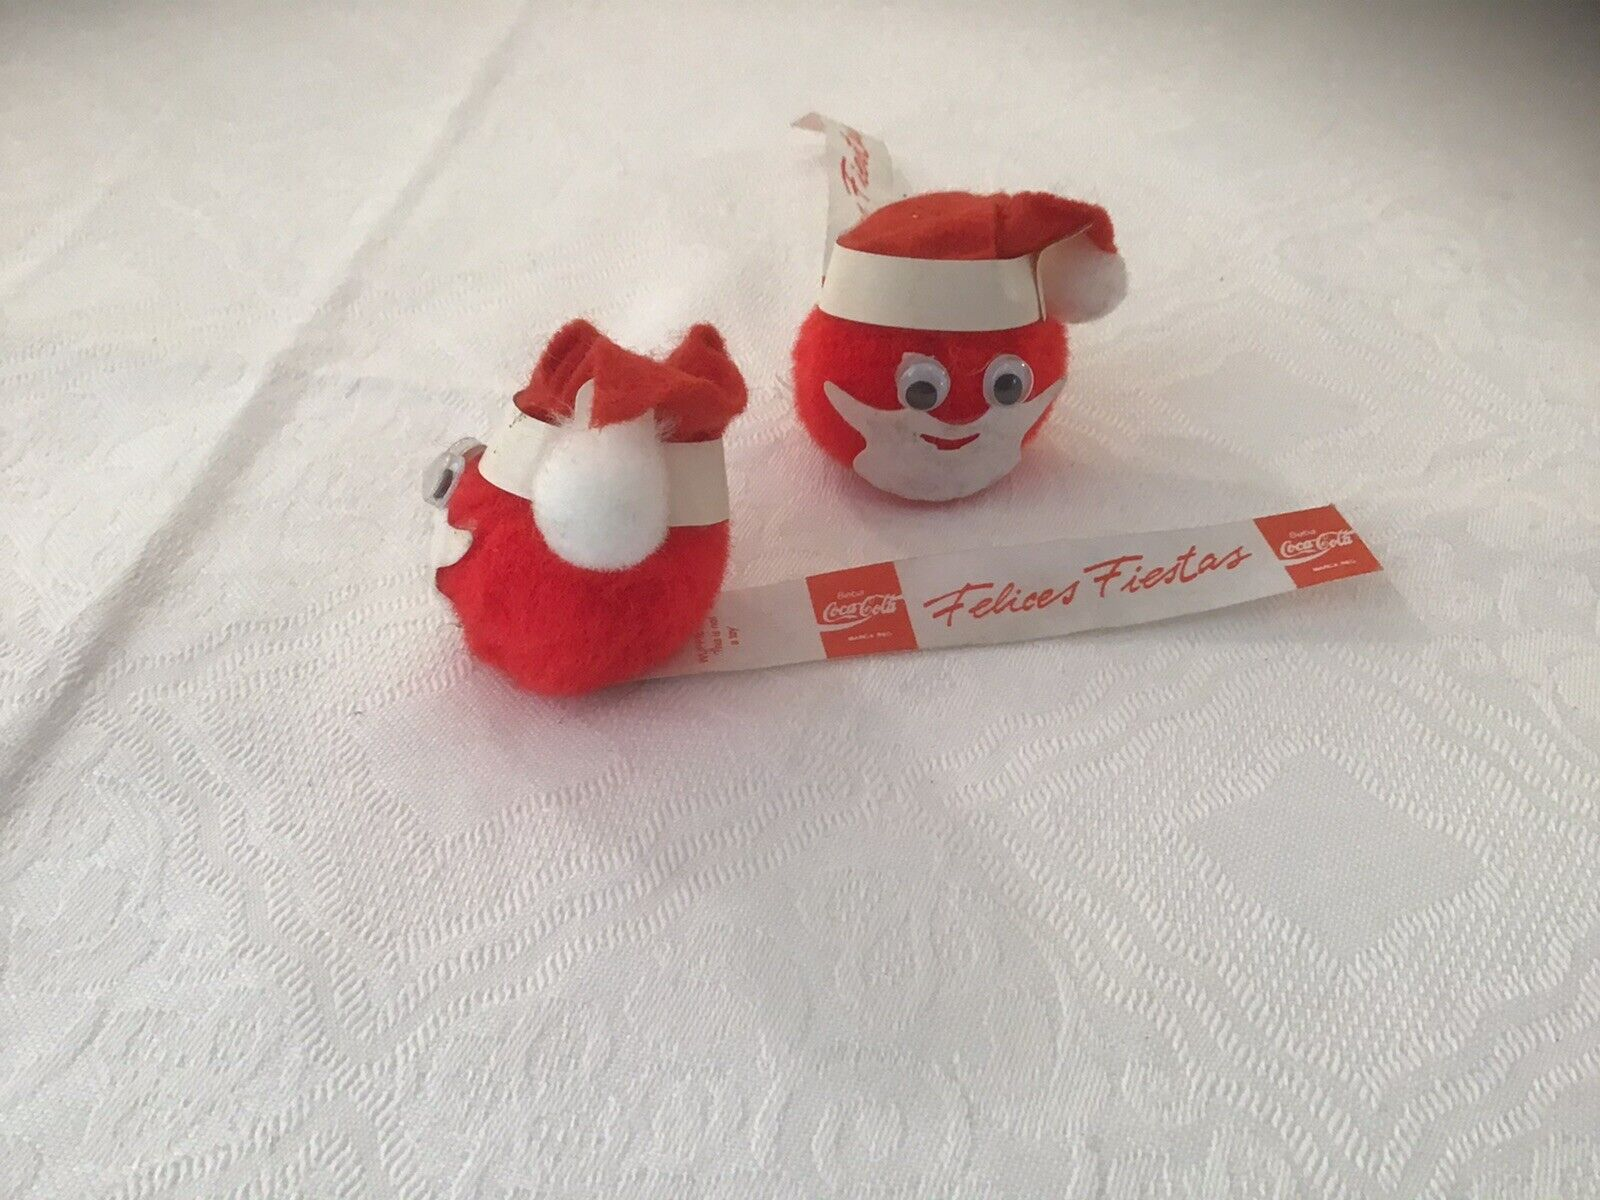 Vintage Wuppie Netherlands For Coca-Cola Coke Spain Christmas Promotions